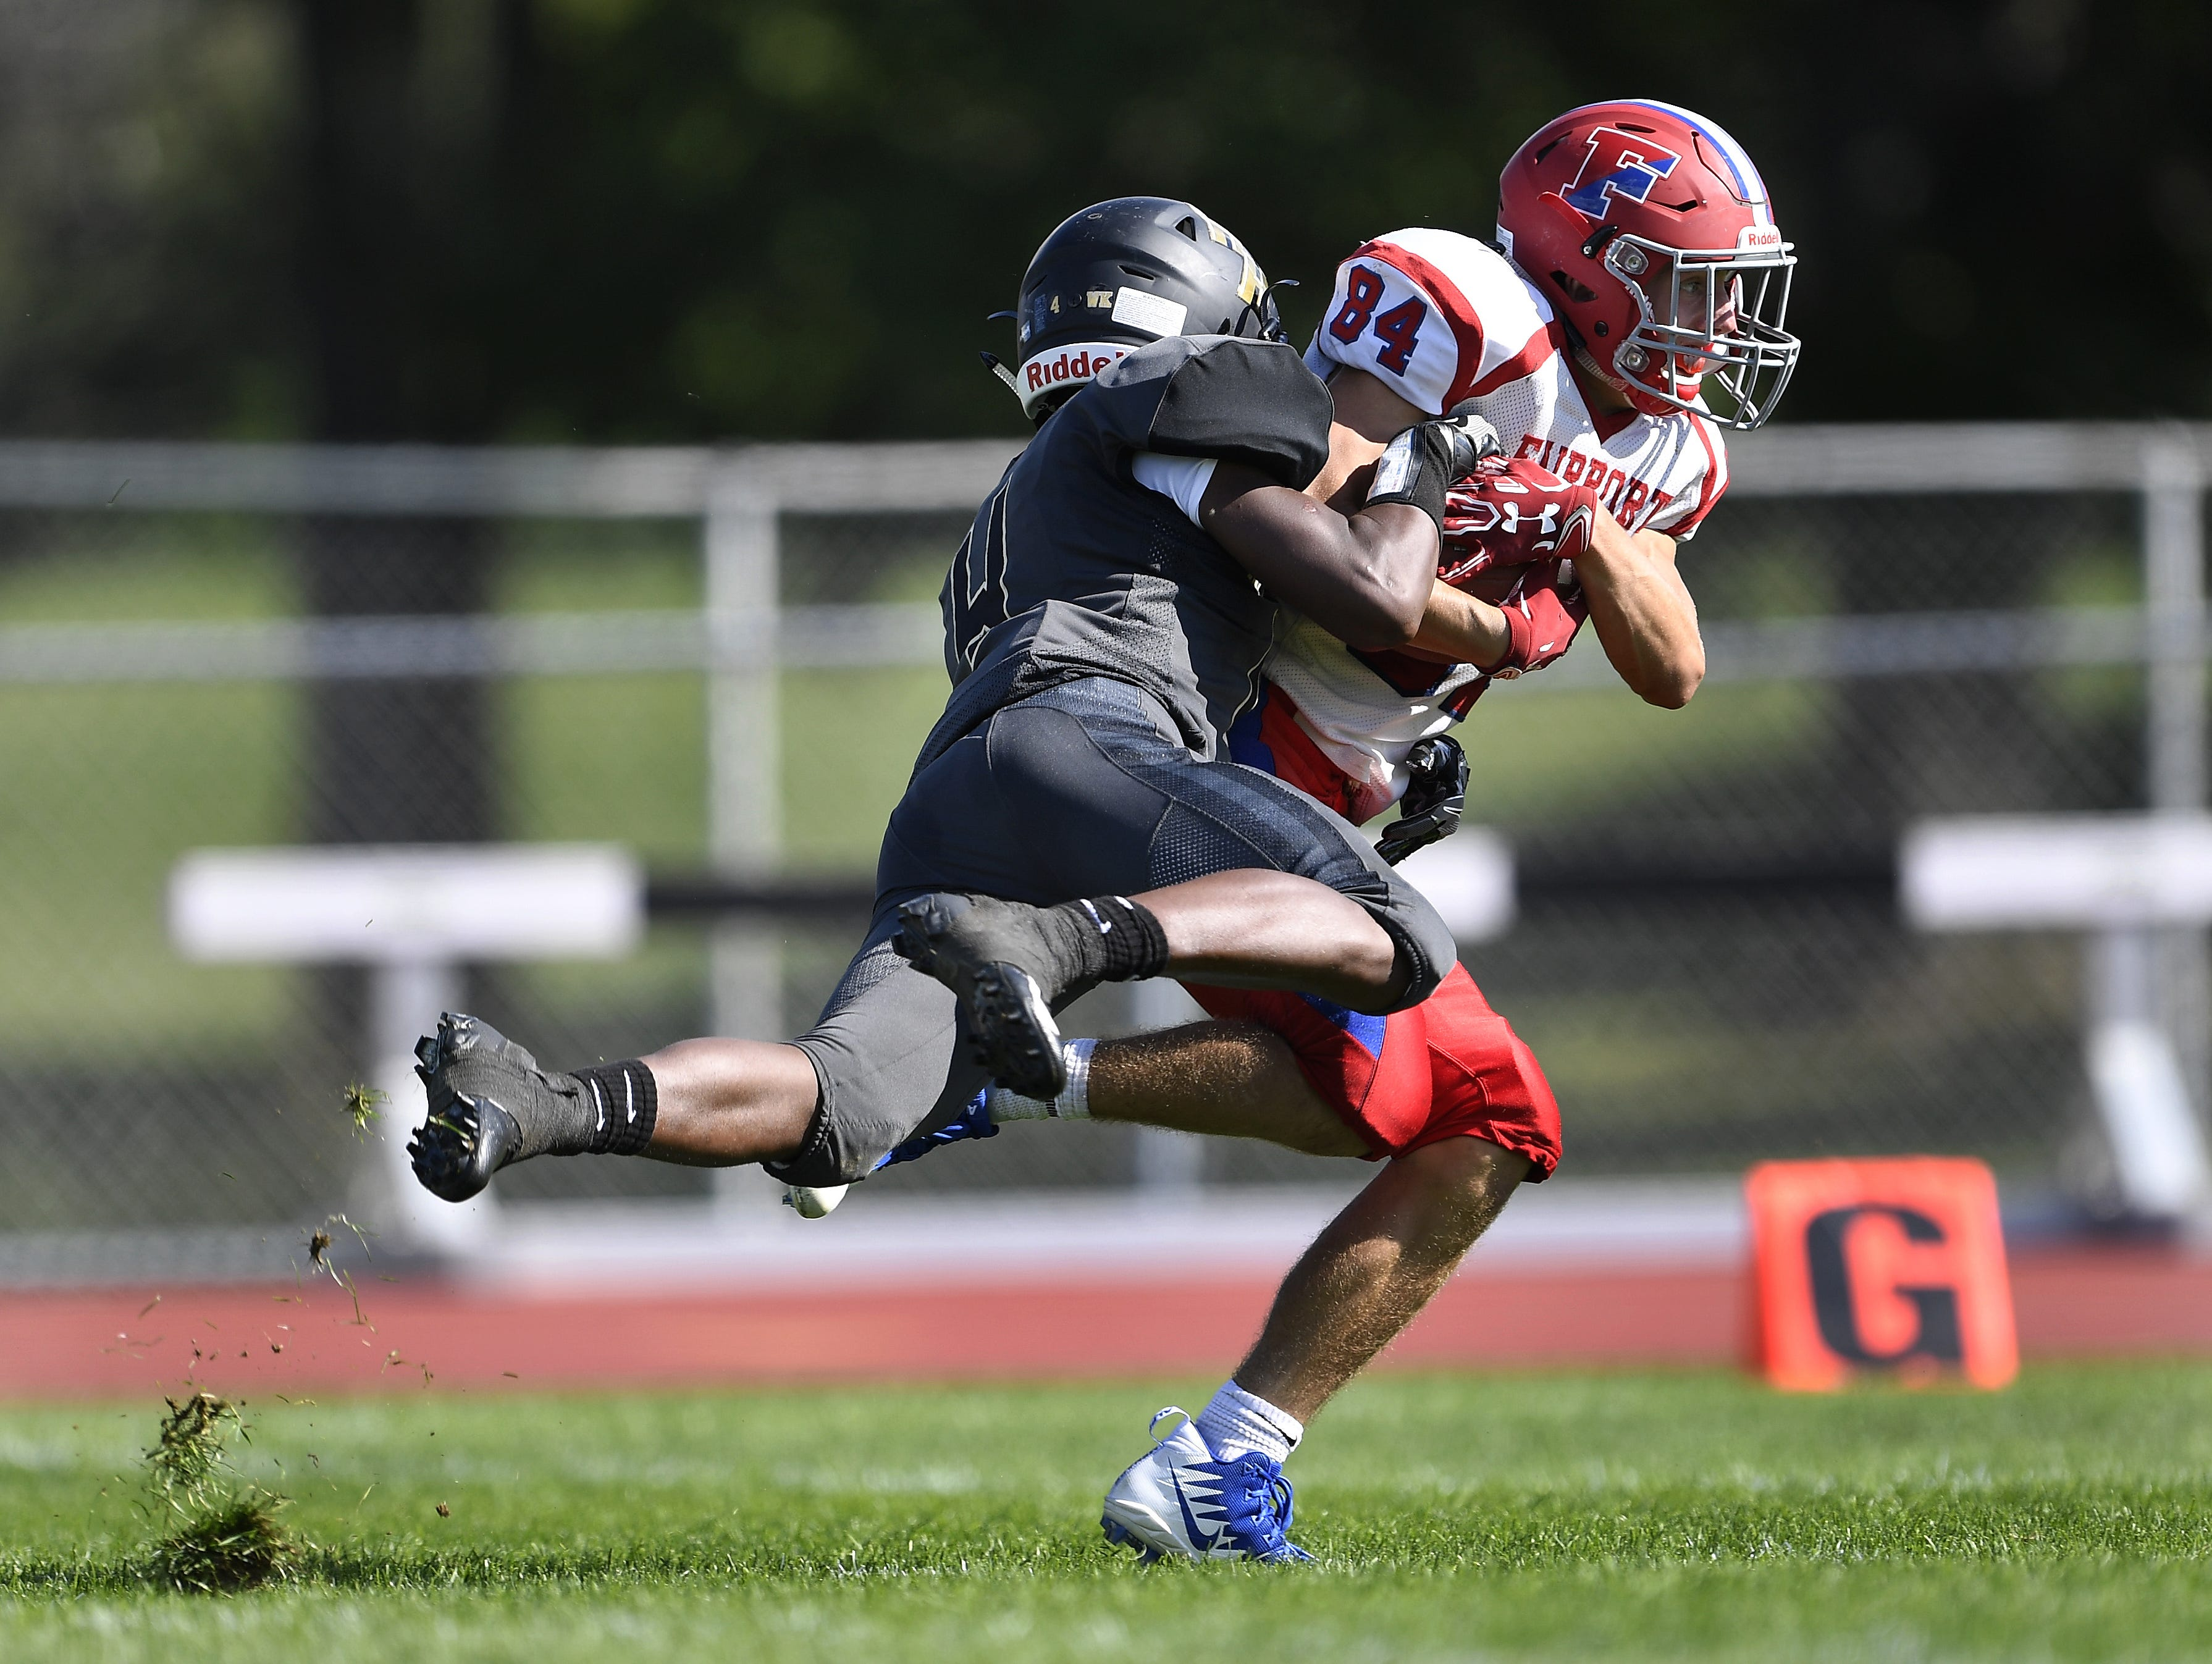 Fairport's Ryan Harman, right, is tackled by Rush-Henrietta's Mark Rogers after a 71-yard catch to open the second half Saturday, Sept. 15, 2018.